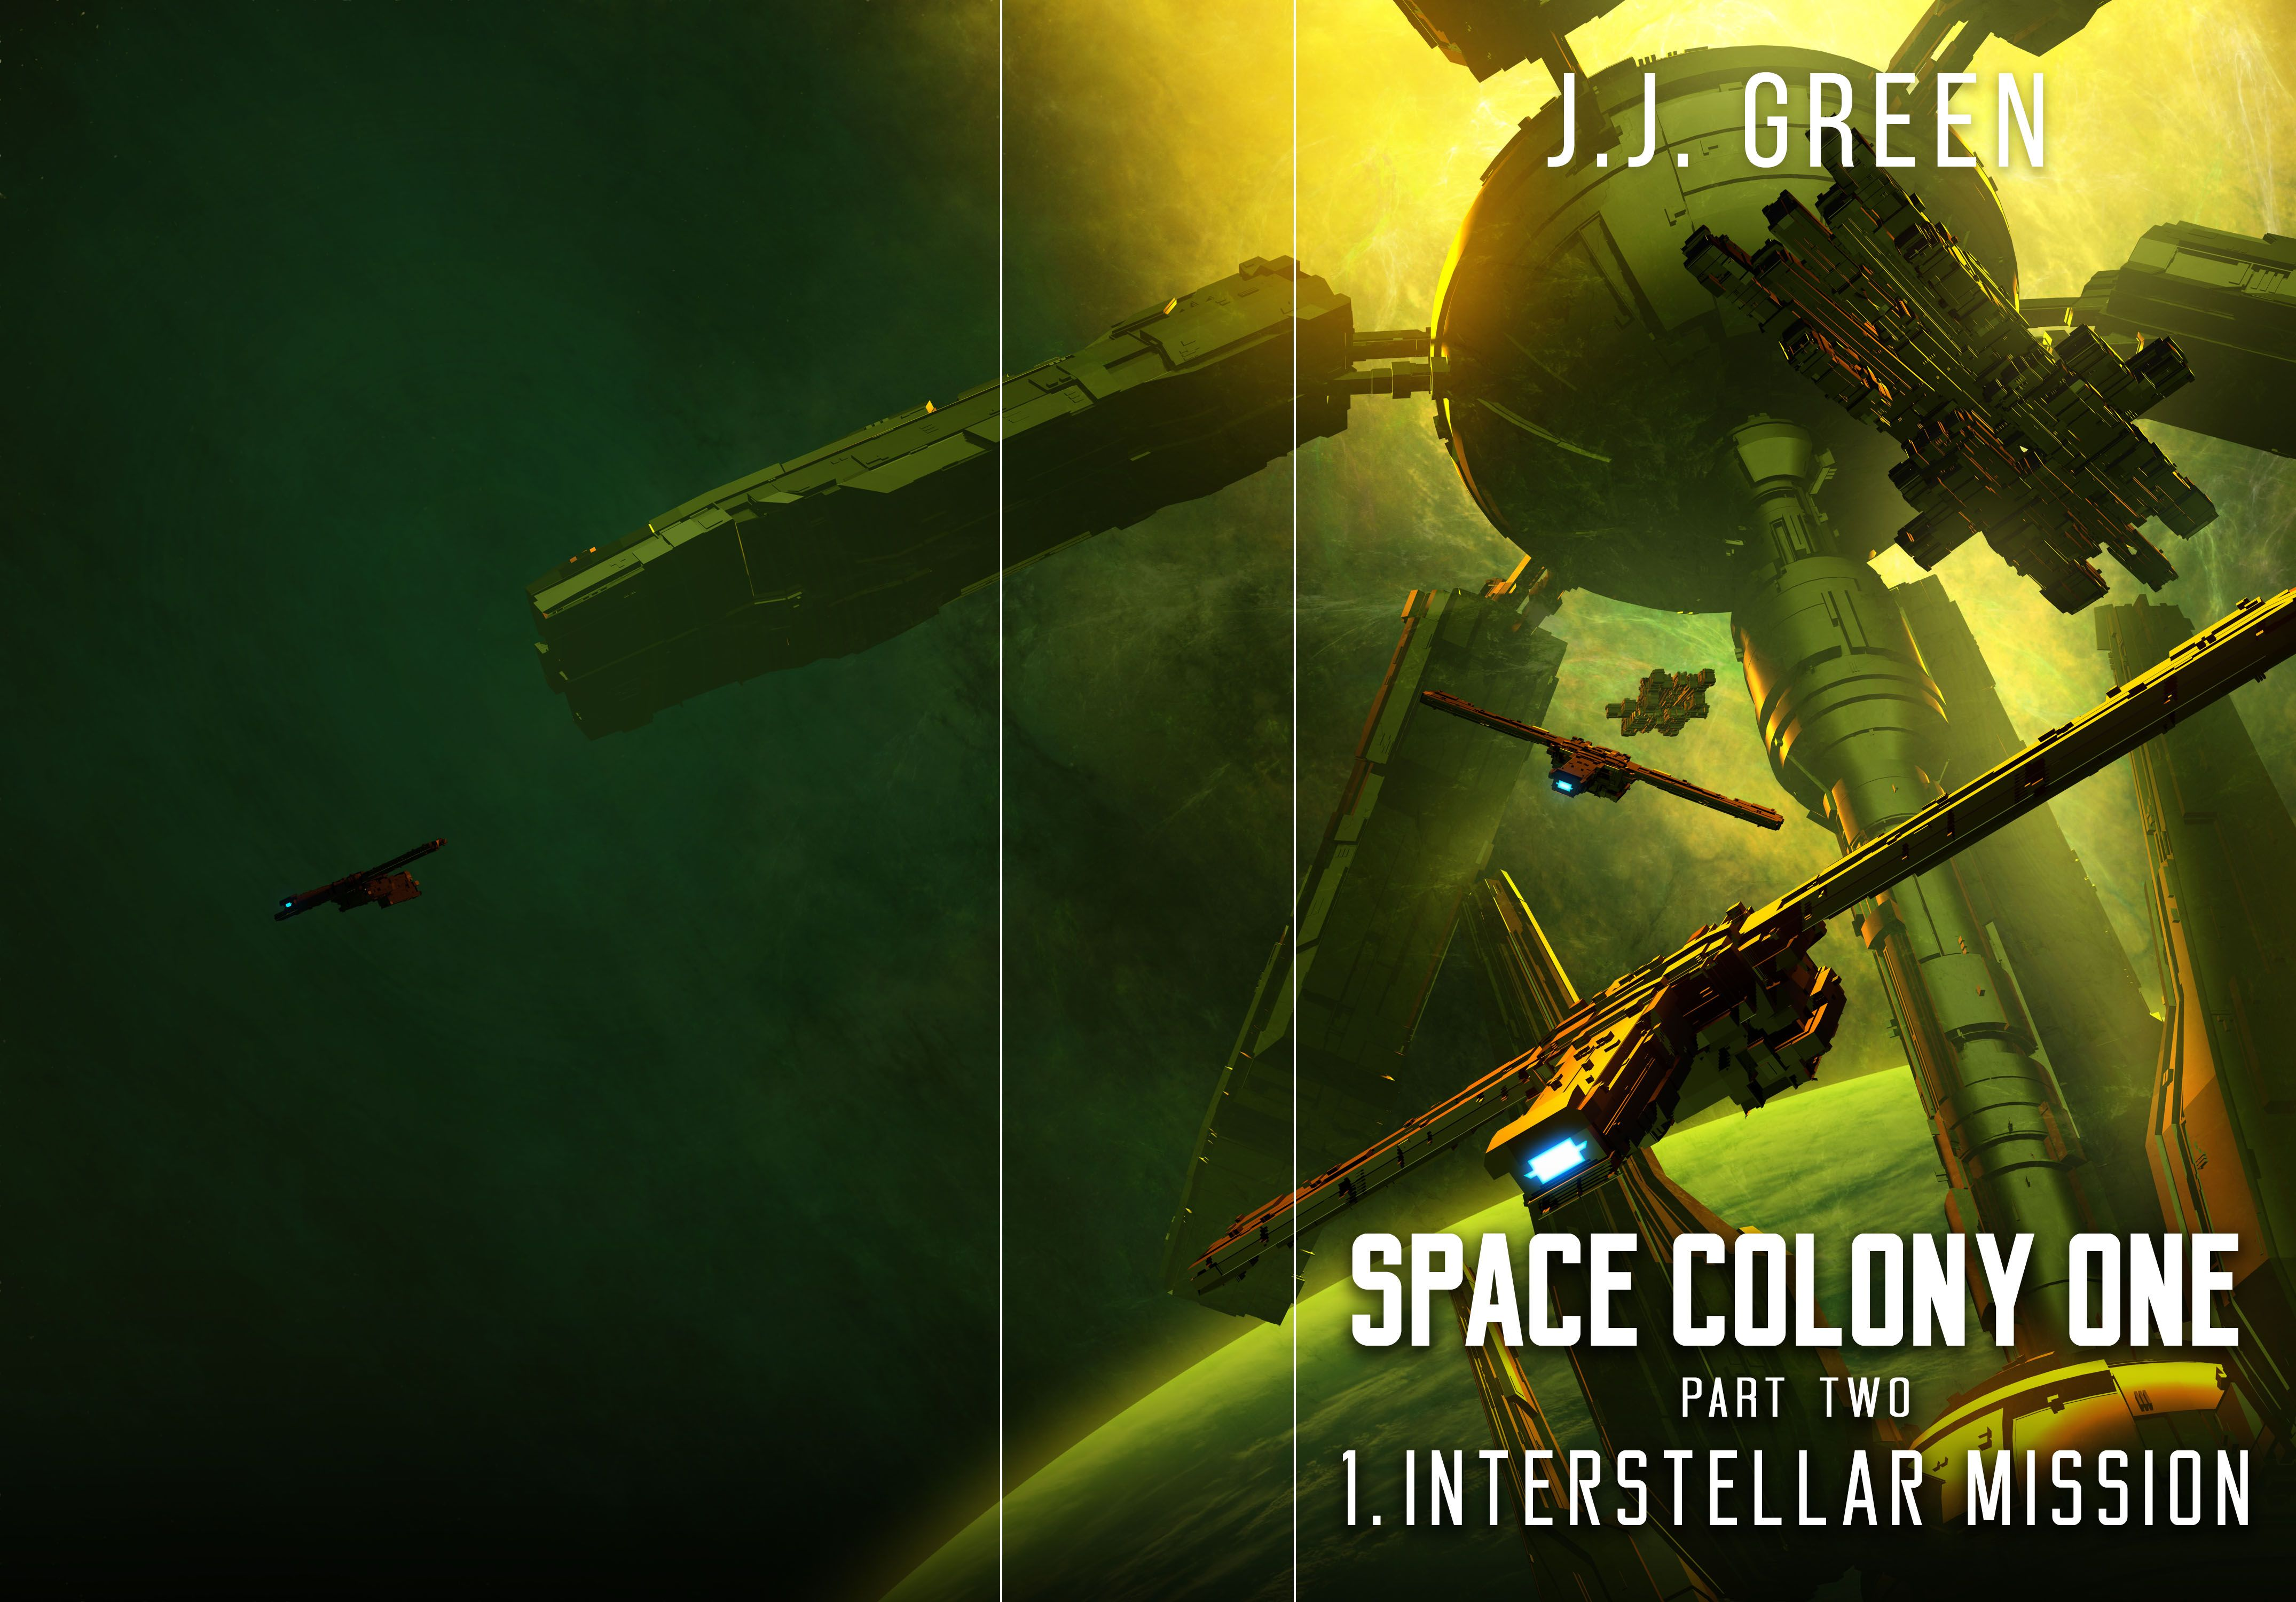 50 Best Starship JJ Green images in 2020 | Science fiction